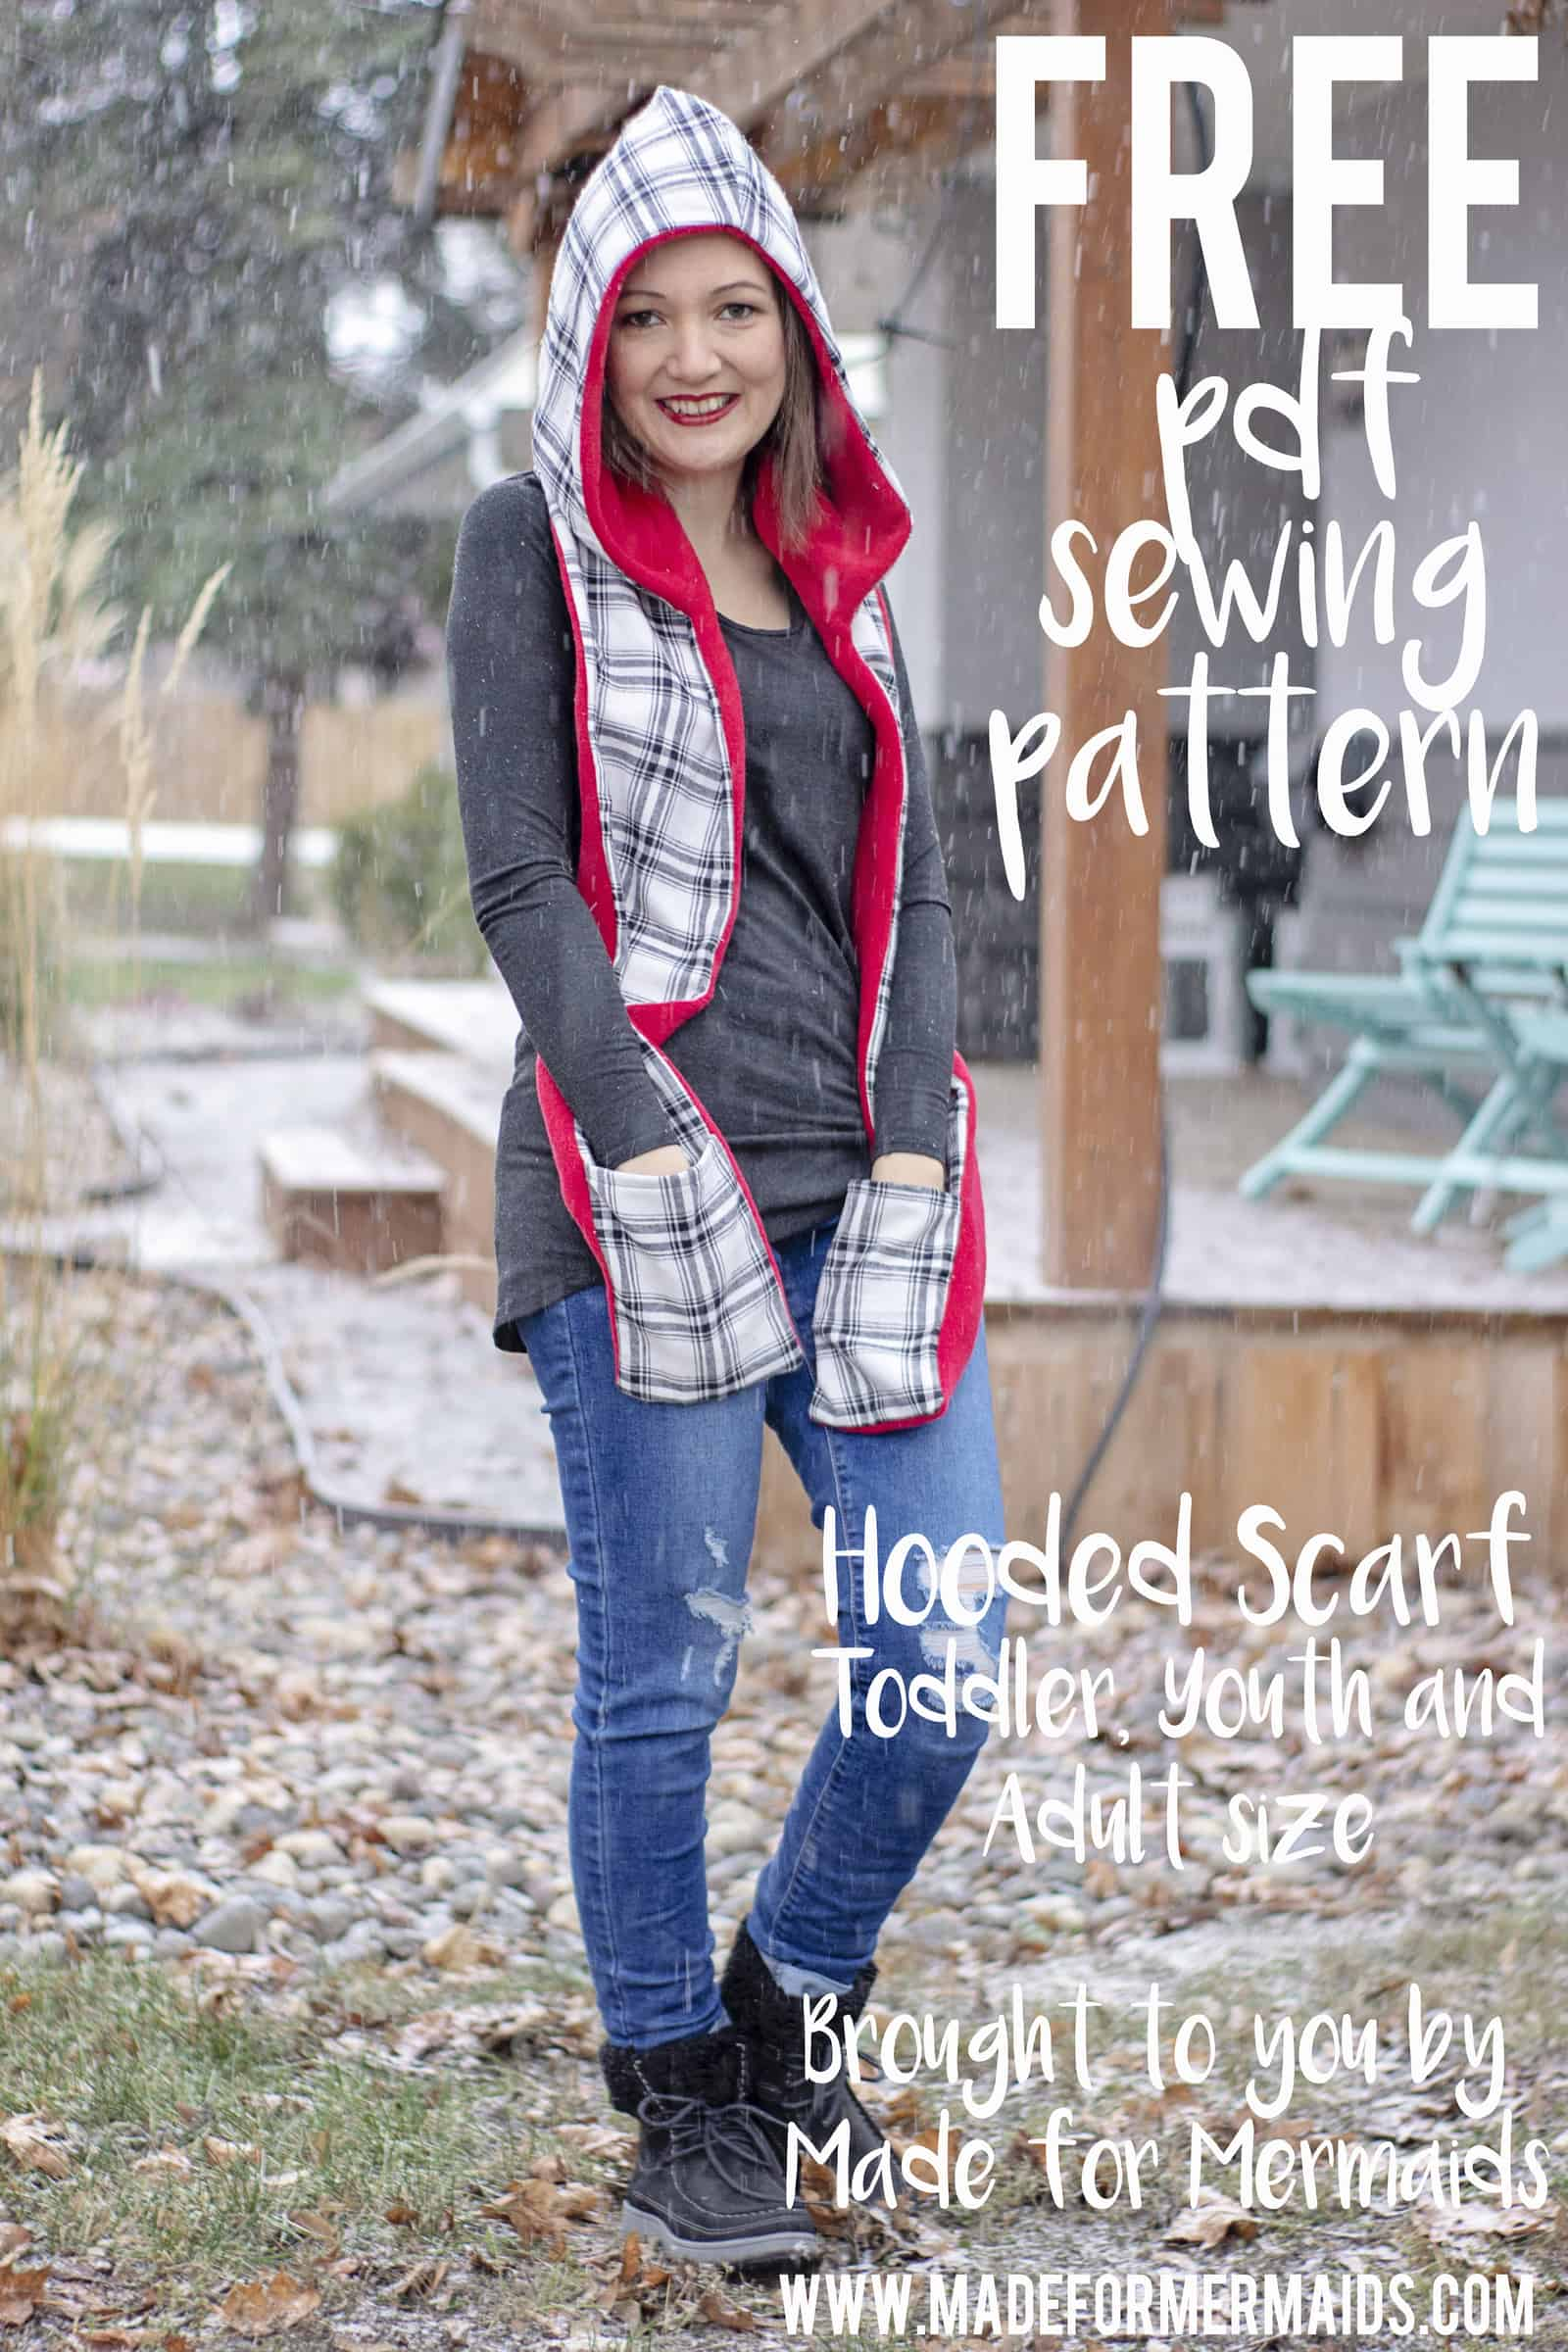 Free Hooded Scarf In Toddler Youth Adult Sizes